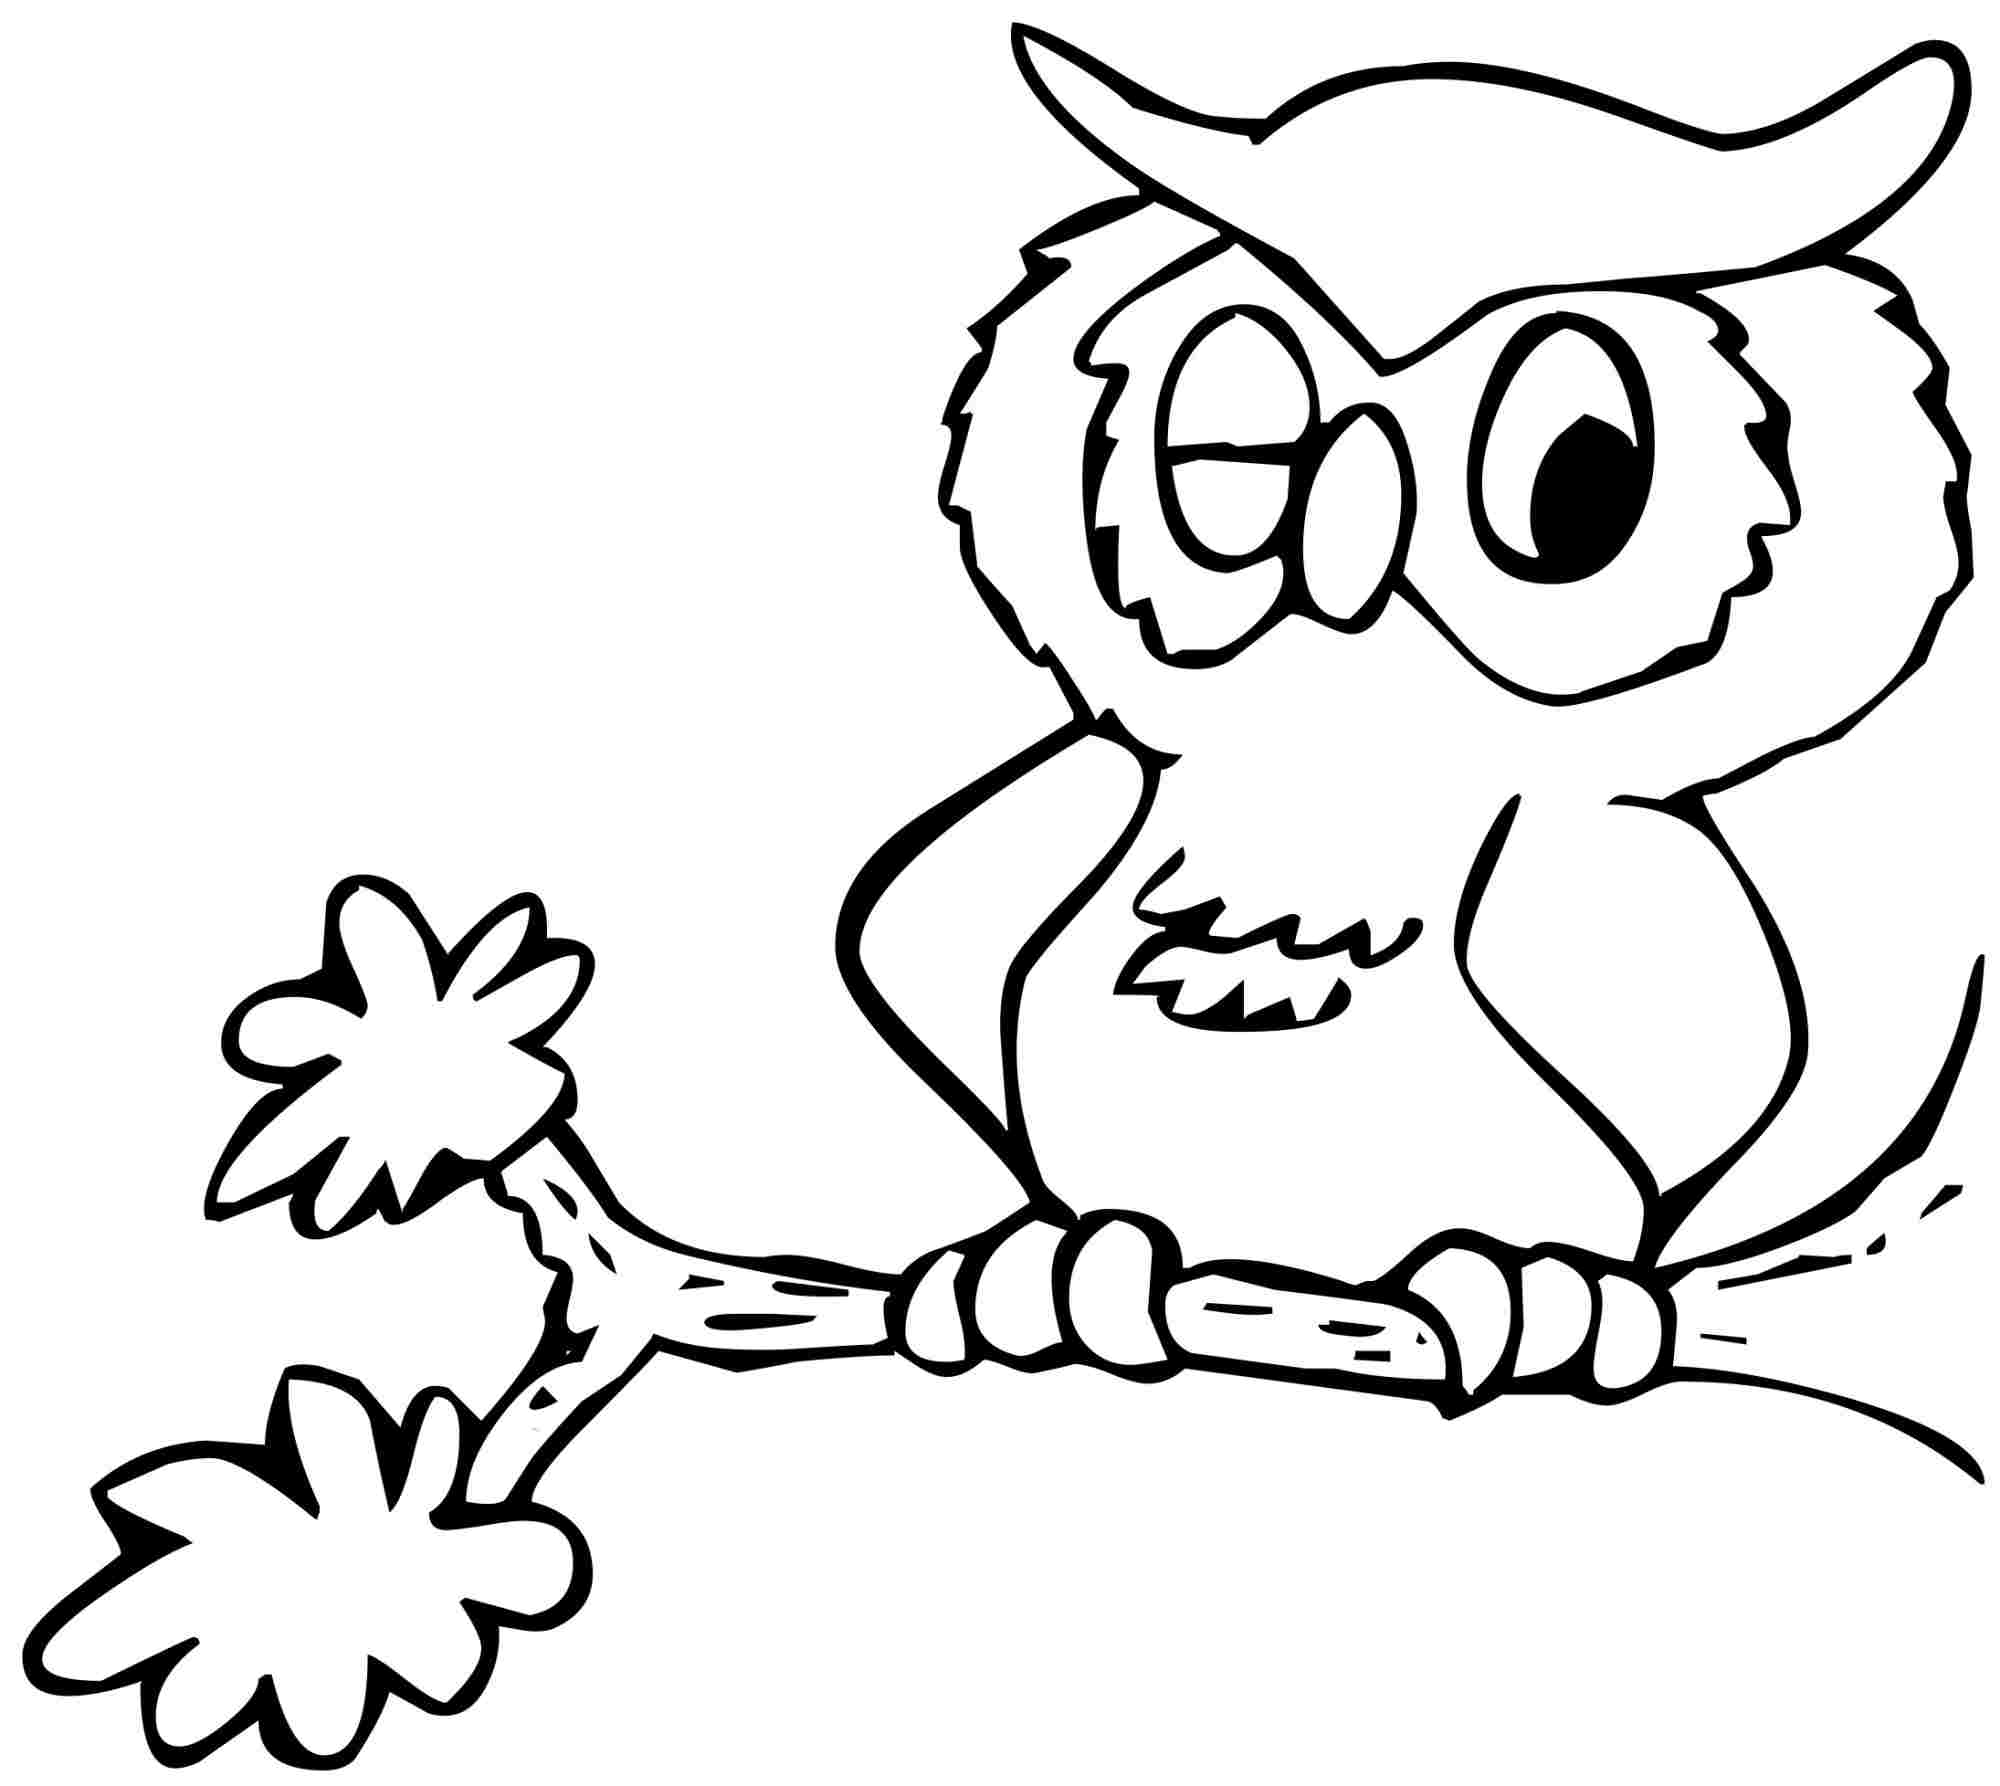 2000x1786 Download Coloring Pages For Girls And Boys